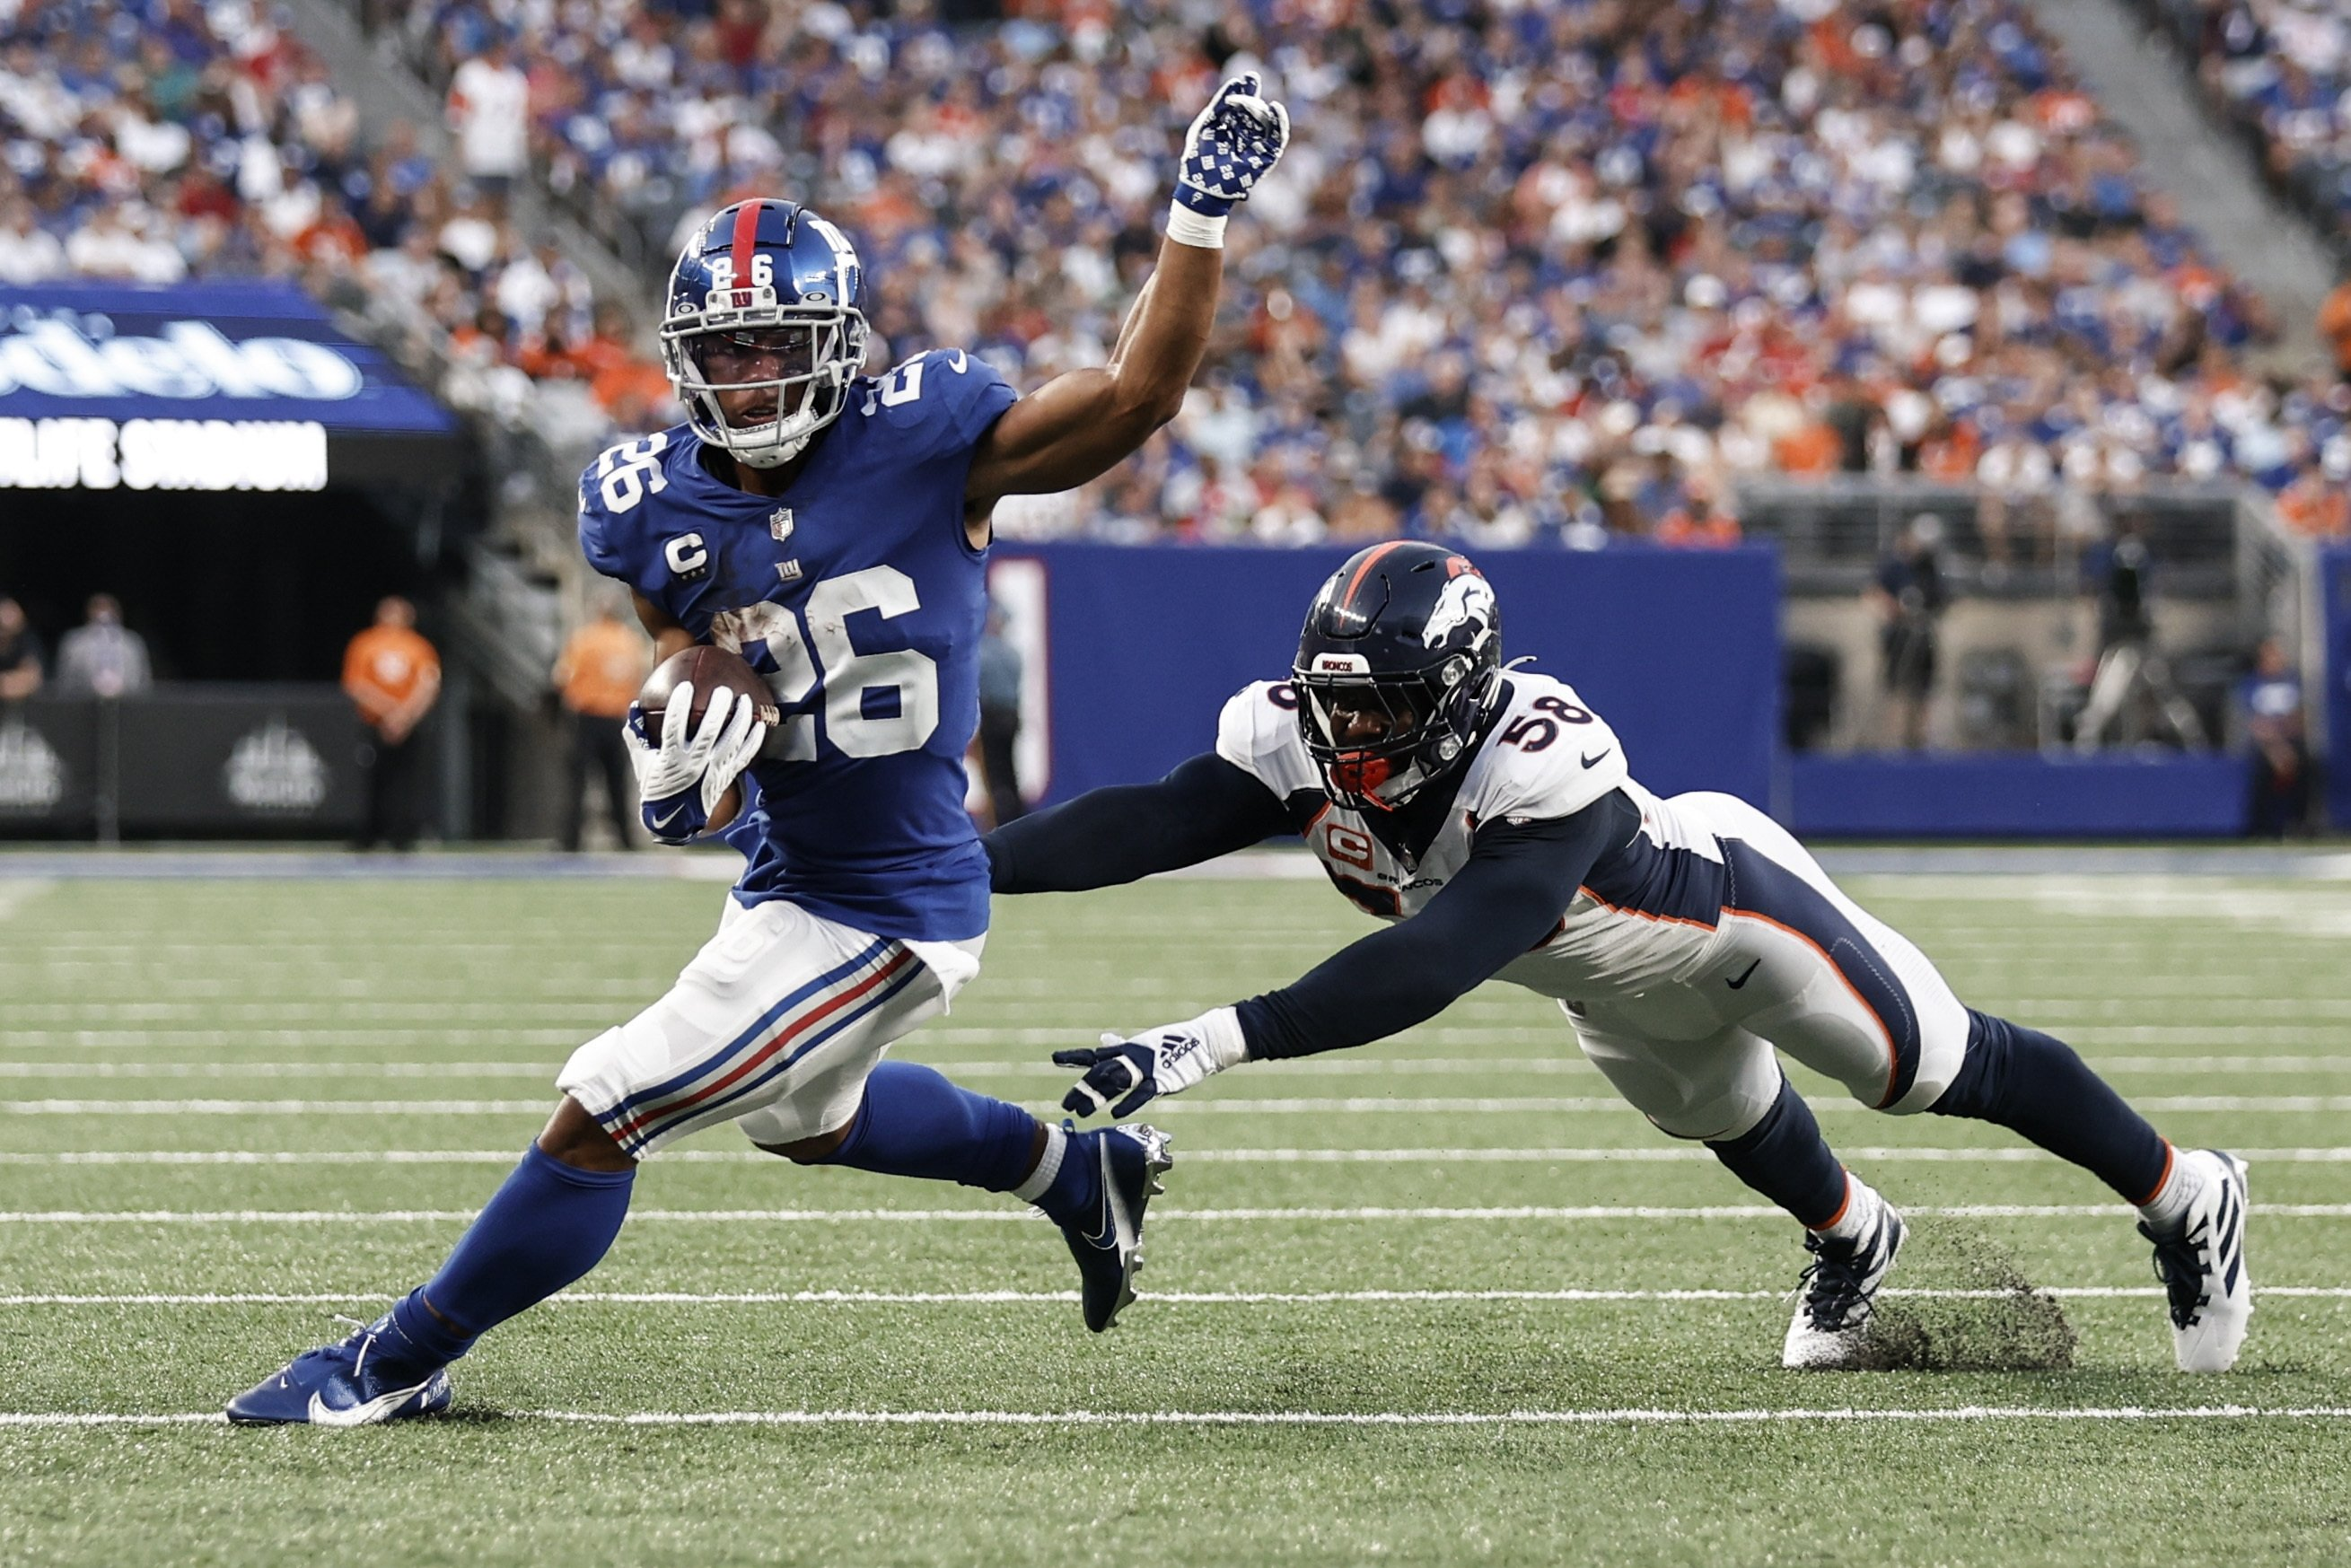 New York Giants running back Saquon Barkley (26) runs away from Denver Broncos' Von Miller (58) during the second half of the Broncos 27-13 victory, East Rutherford, New Jersey, U.S., Sept. 12, 2021. (AP Photo)